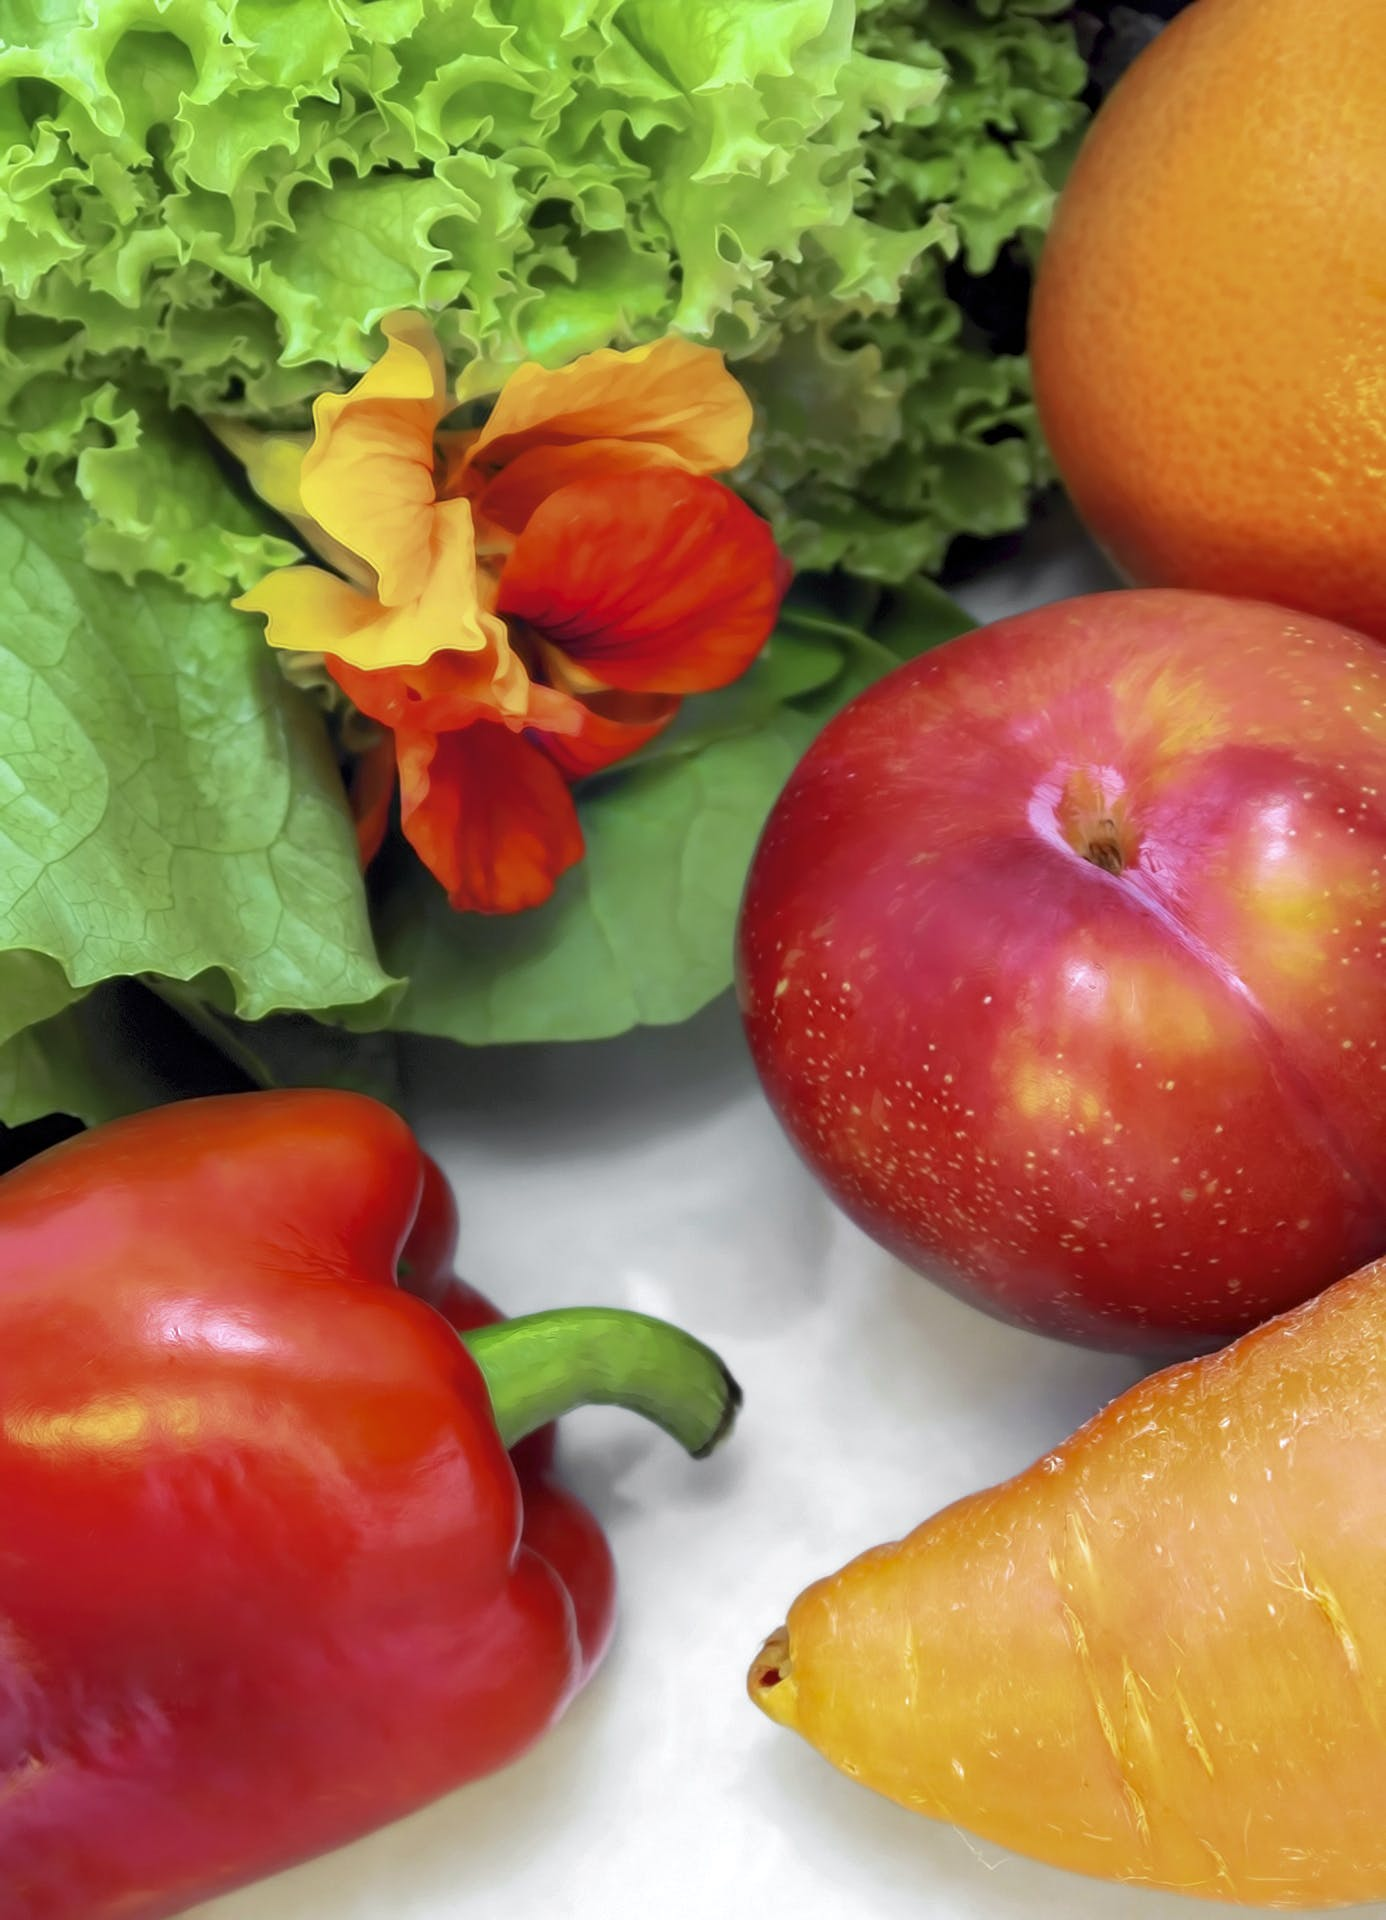 Free stock photo of apples, carrots, color, flores